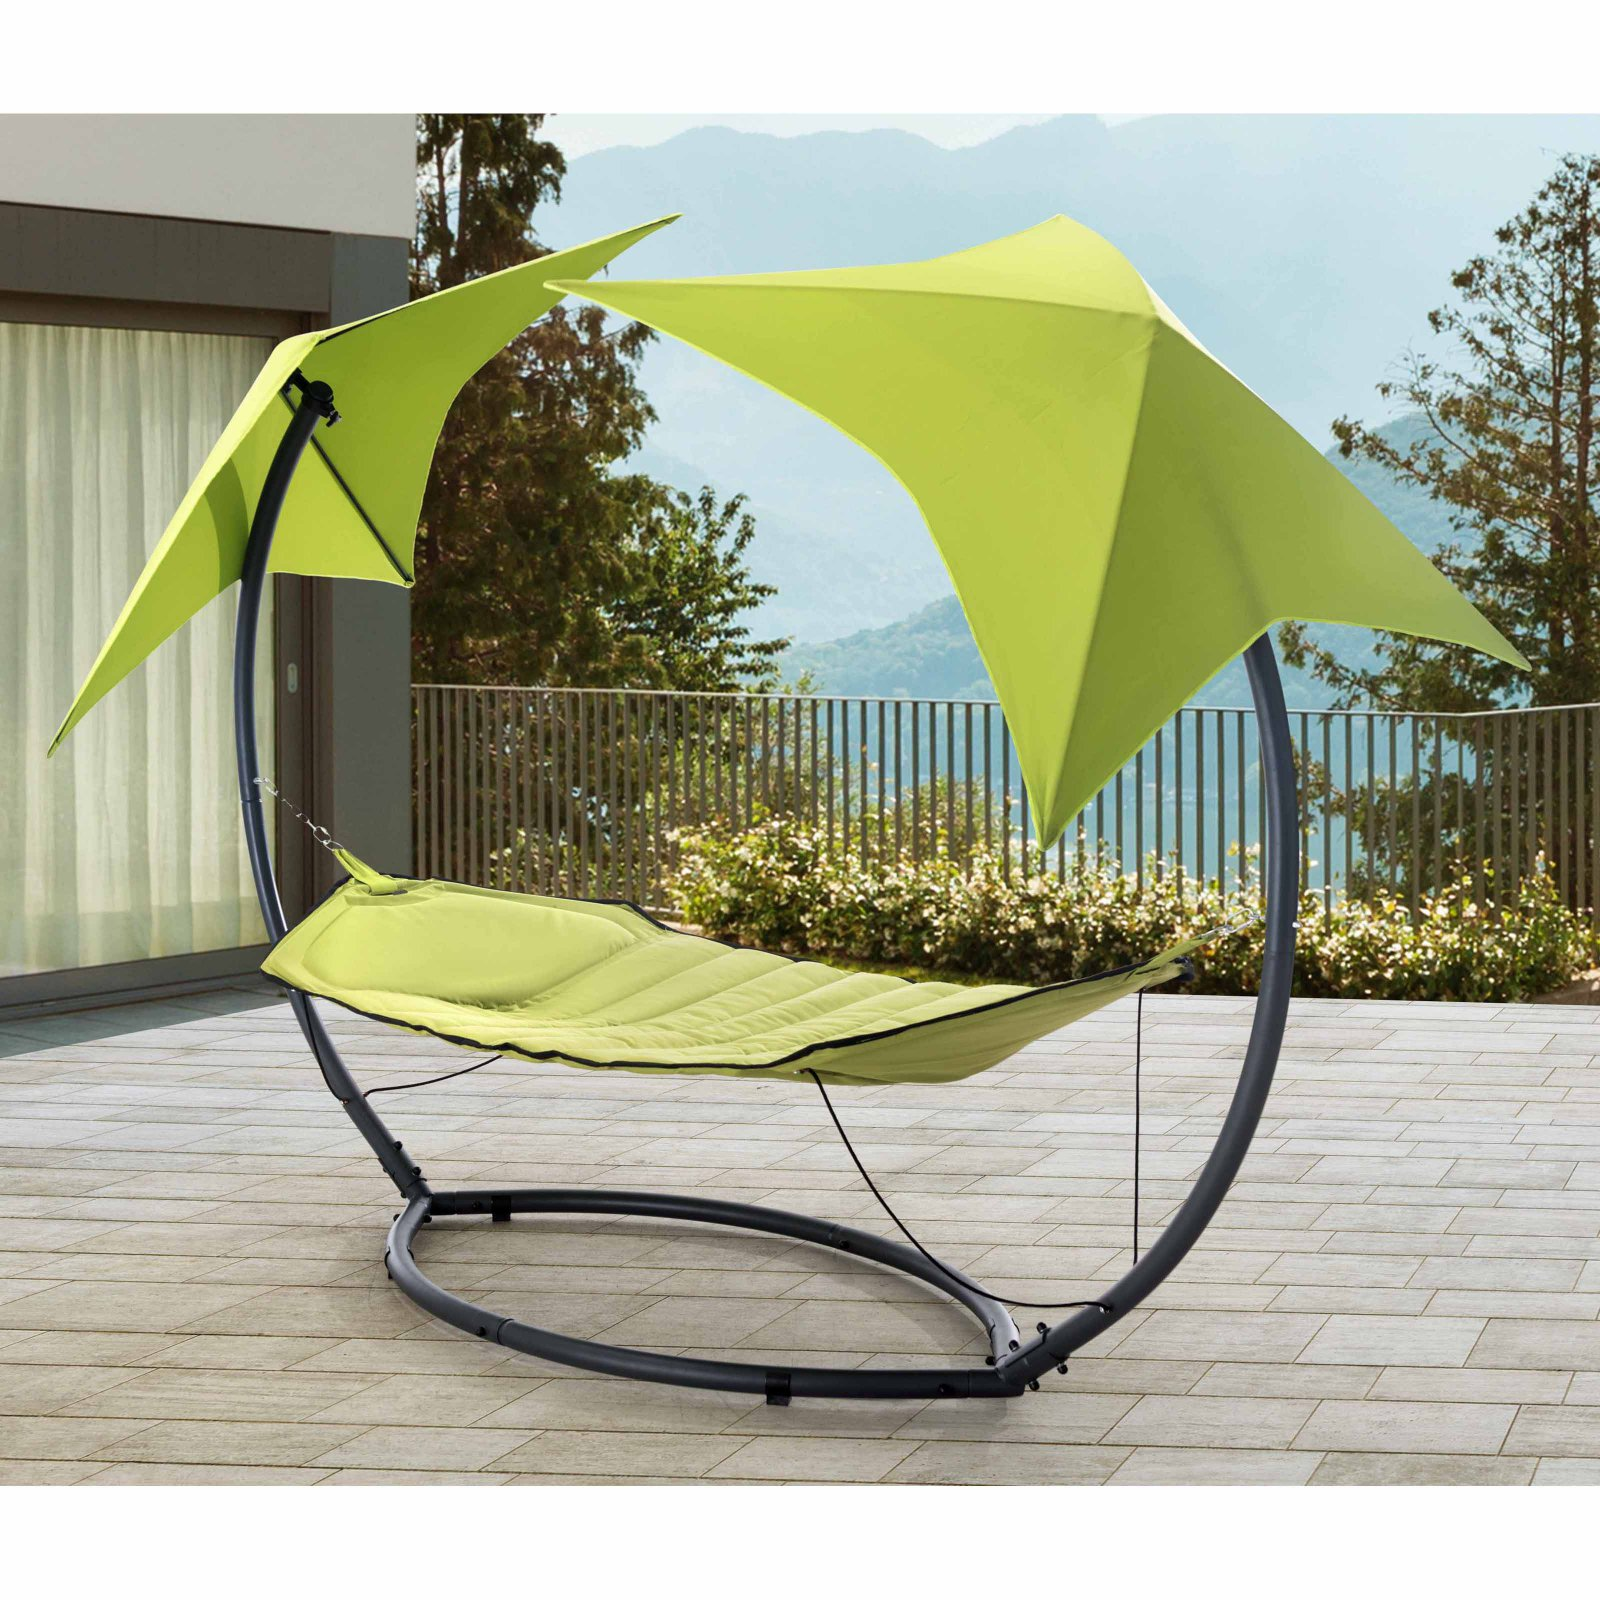 mosquito shop wmosquito shade bug sorara hammock swing living net with outdoor